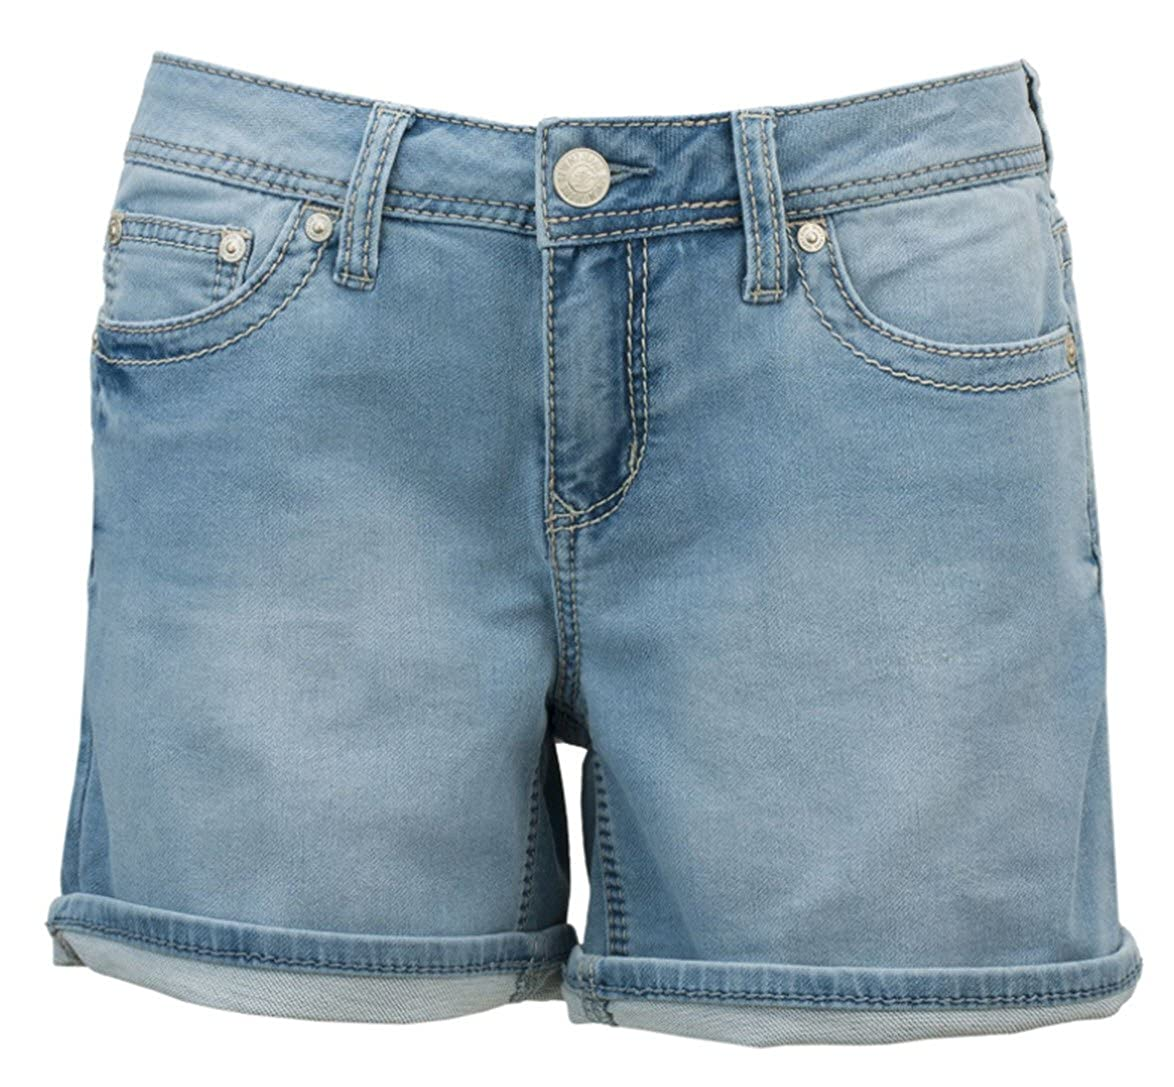 0217f92361 Seven7 Women's Cuffed 5 Inch Denim Short with Embroidered E Loop Pockets at  Amazon Women's Clothing store: